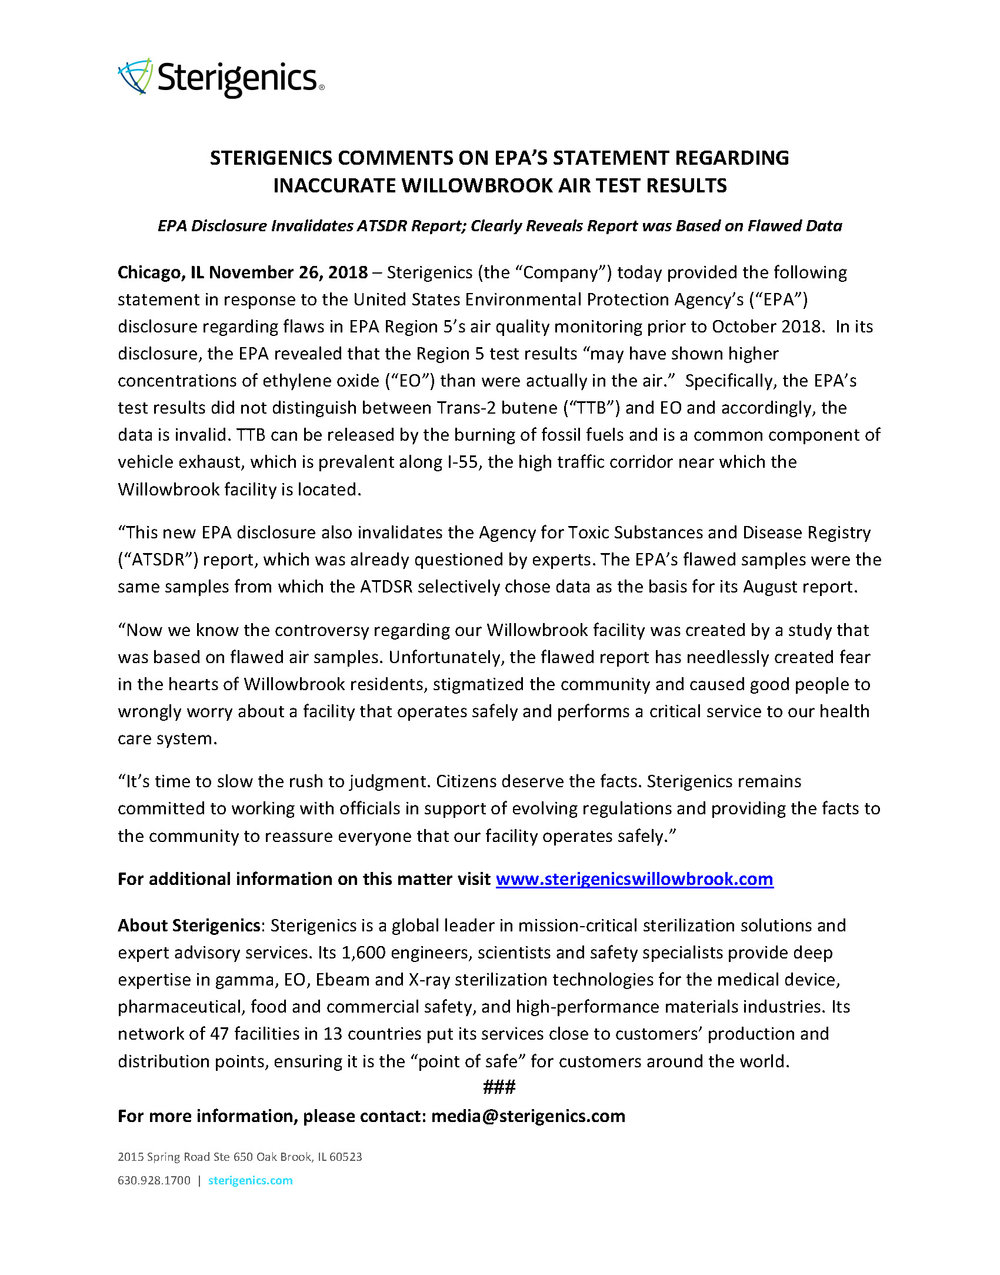 Sterigenics Statement on EPA Flawed Test Results 11.26.18.jpg